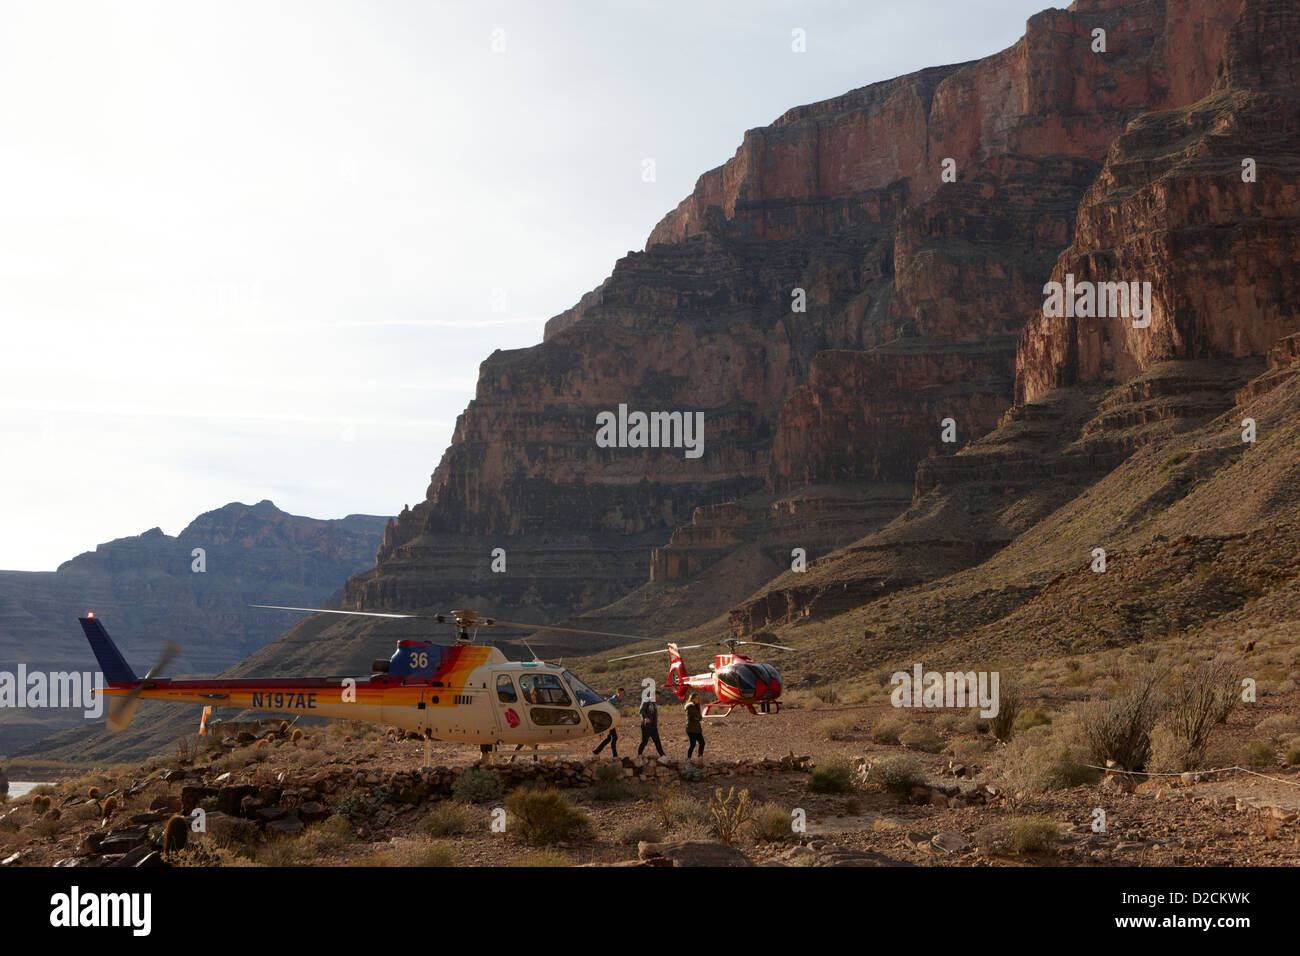 passengers leaving papillon helicopter tours landed on pad down in the Grand canyon Arizona USA - Stock Image